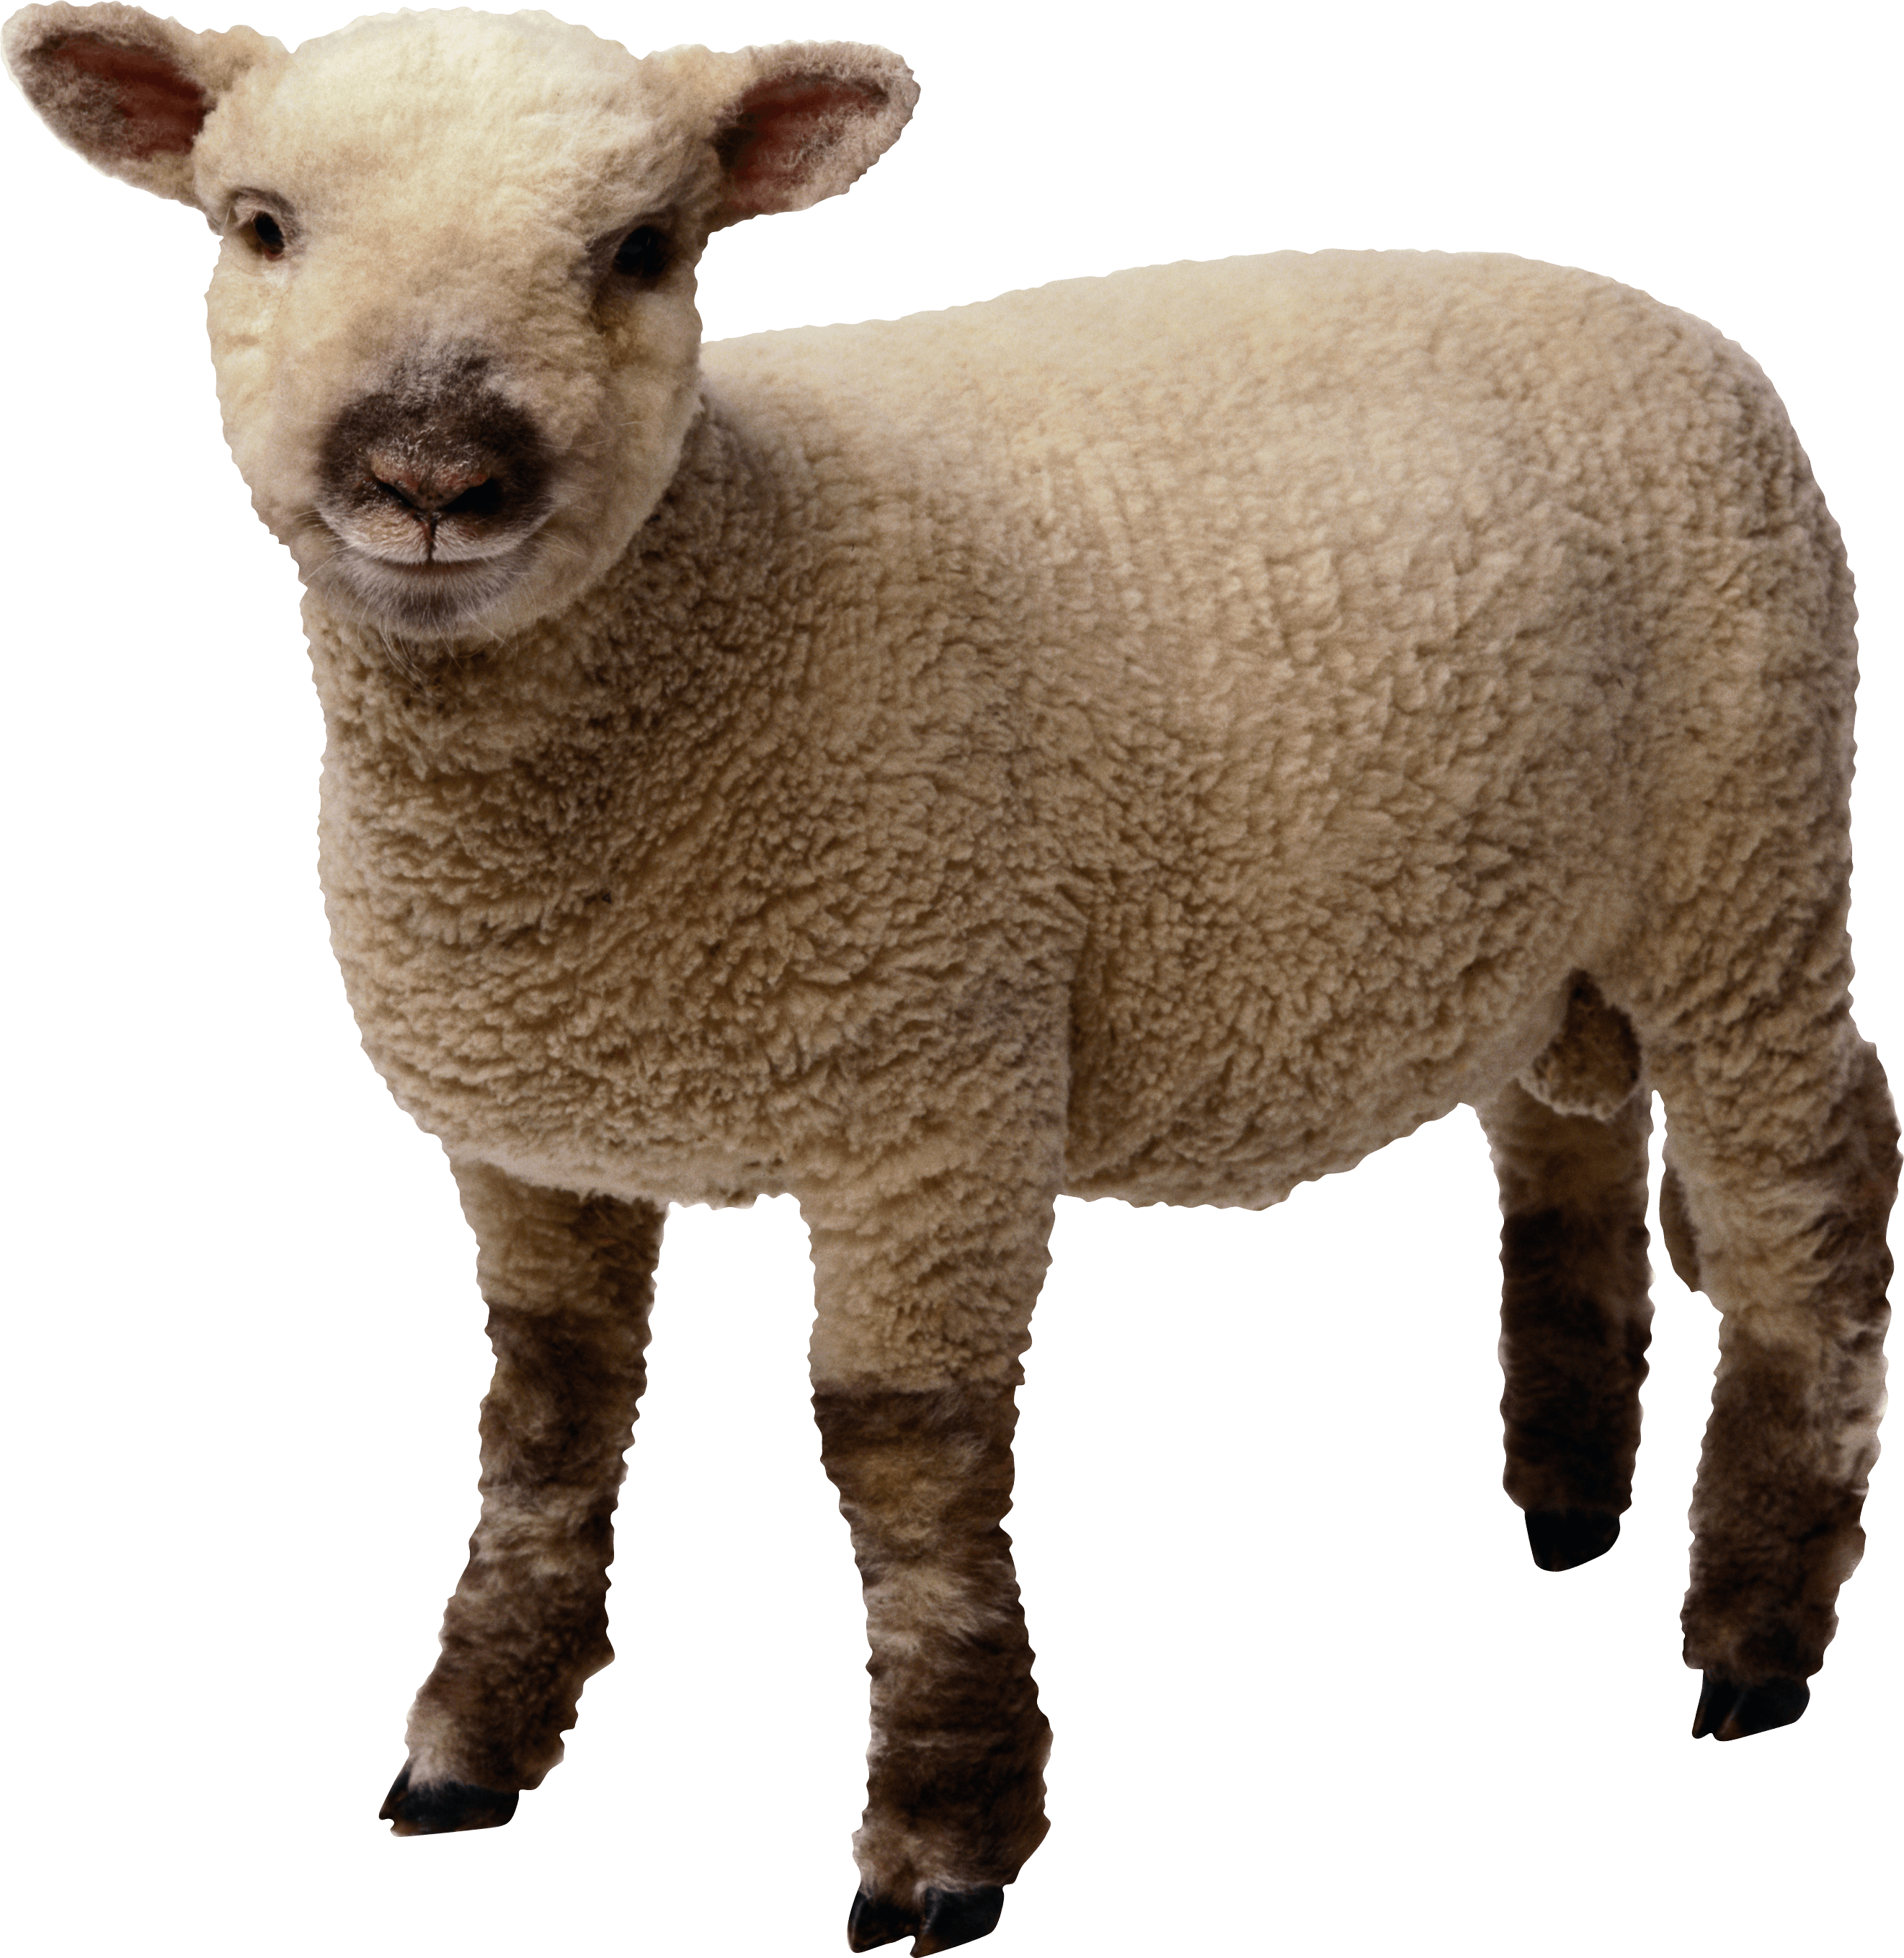 Little Sheep Png Image PNG Image